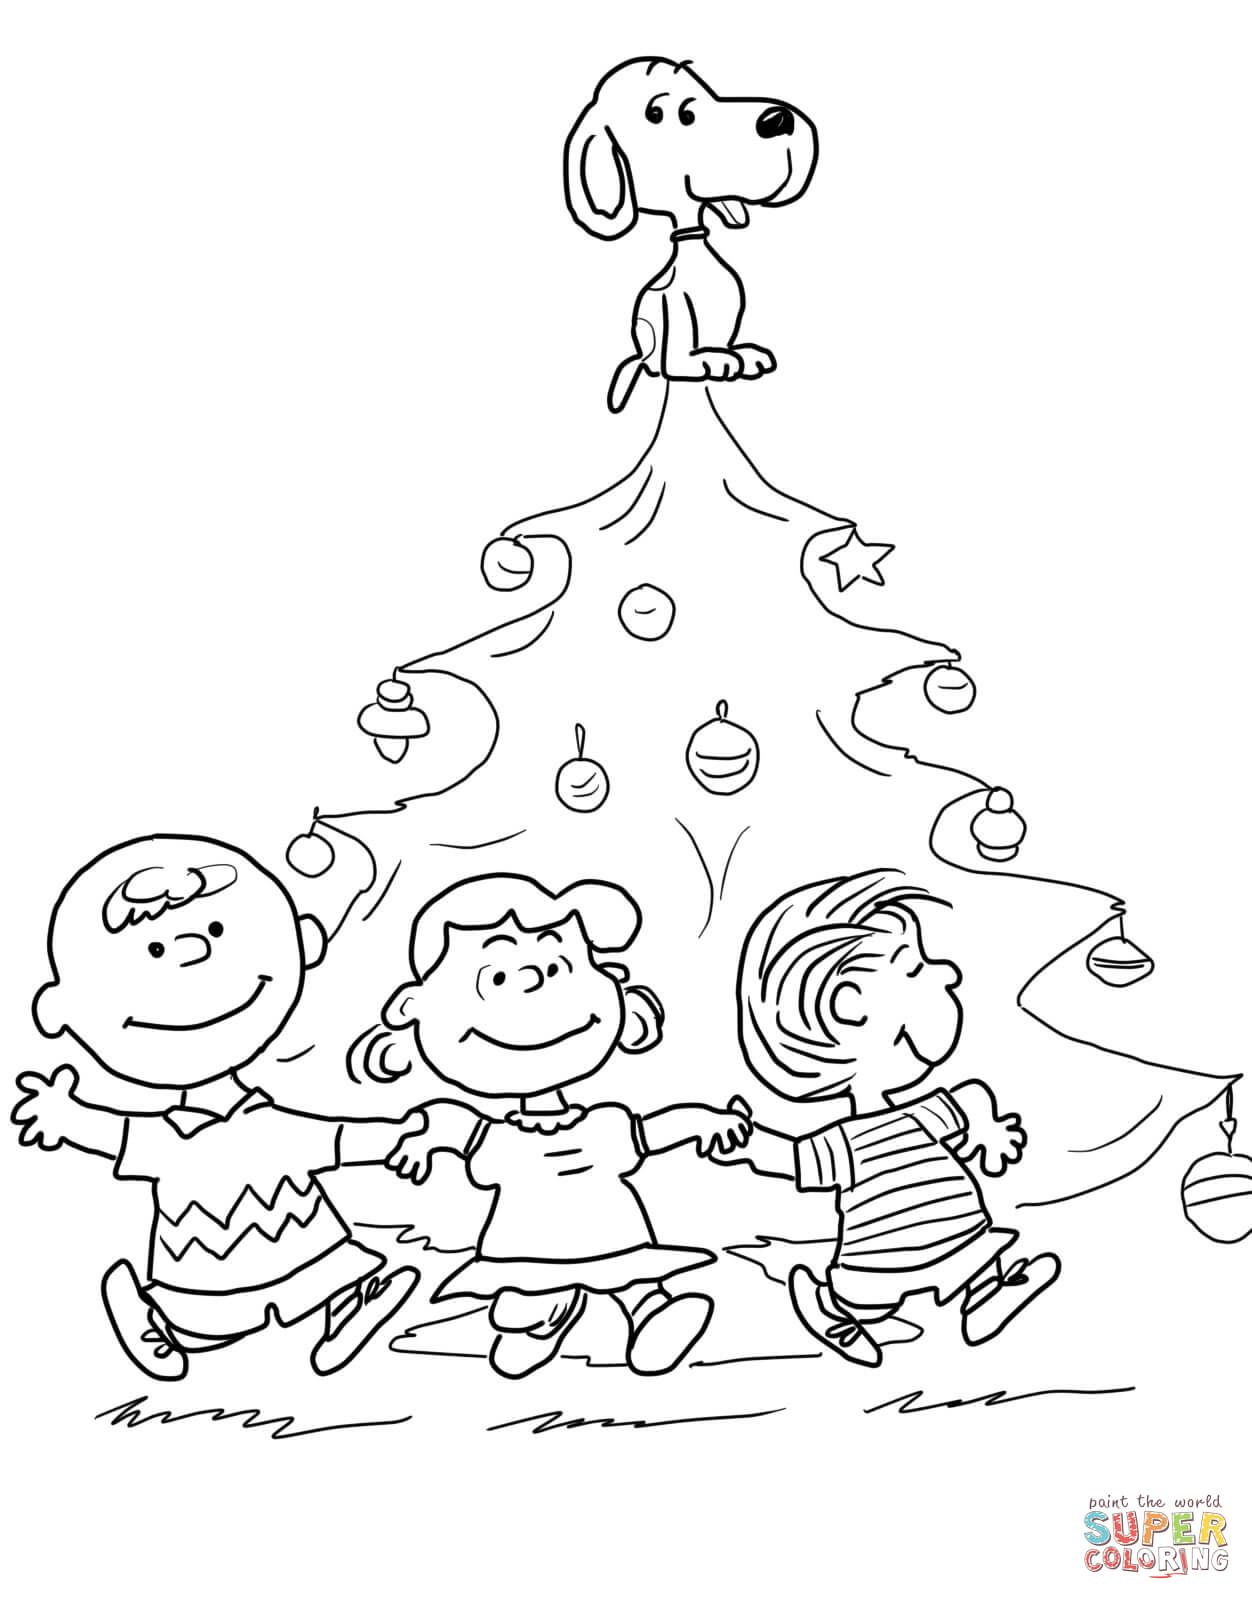 Charlie brown christmas tree coloring page from peanuts category